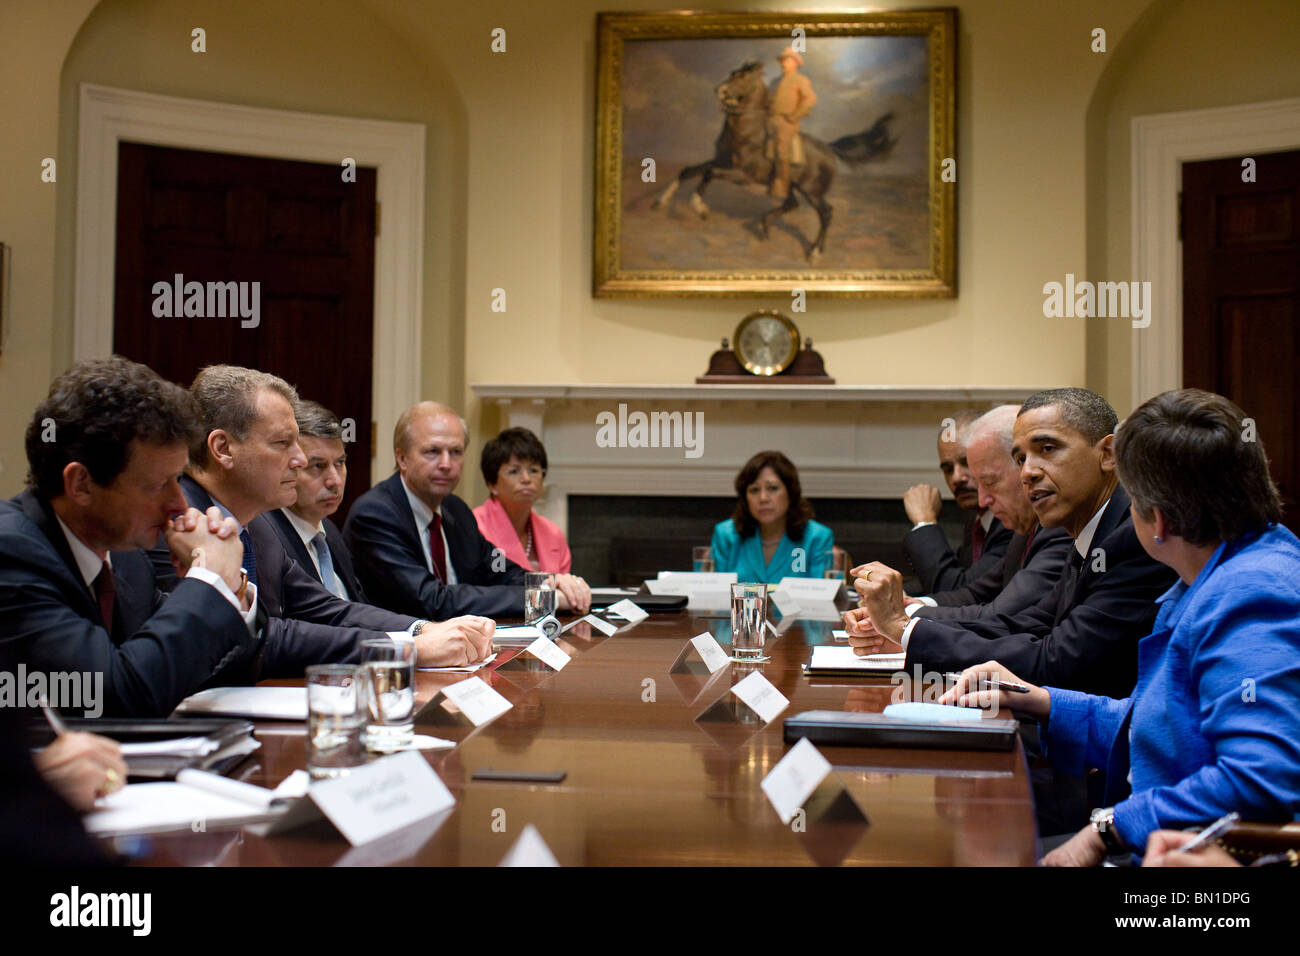 President Barack Obama and Vice President Joe Biden meet with BP executives in the Roosevelt Room of the White House - Stock Image